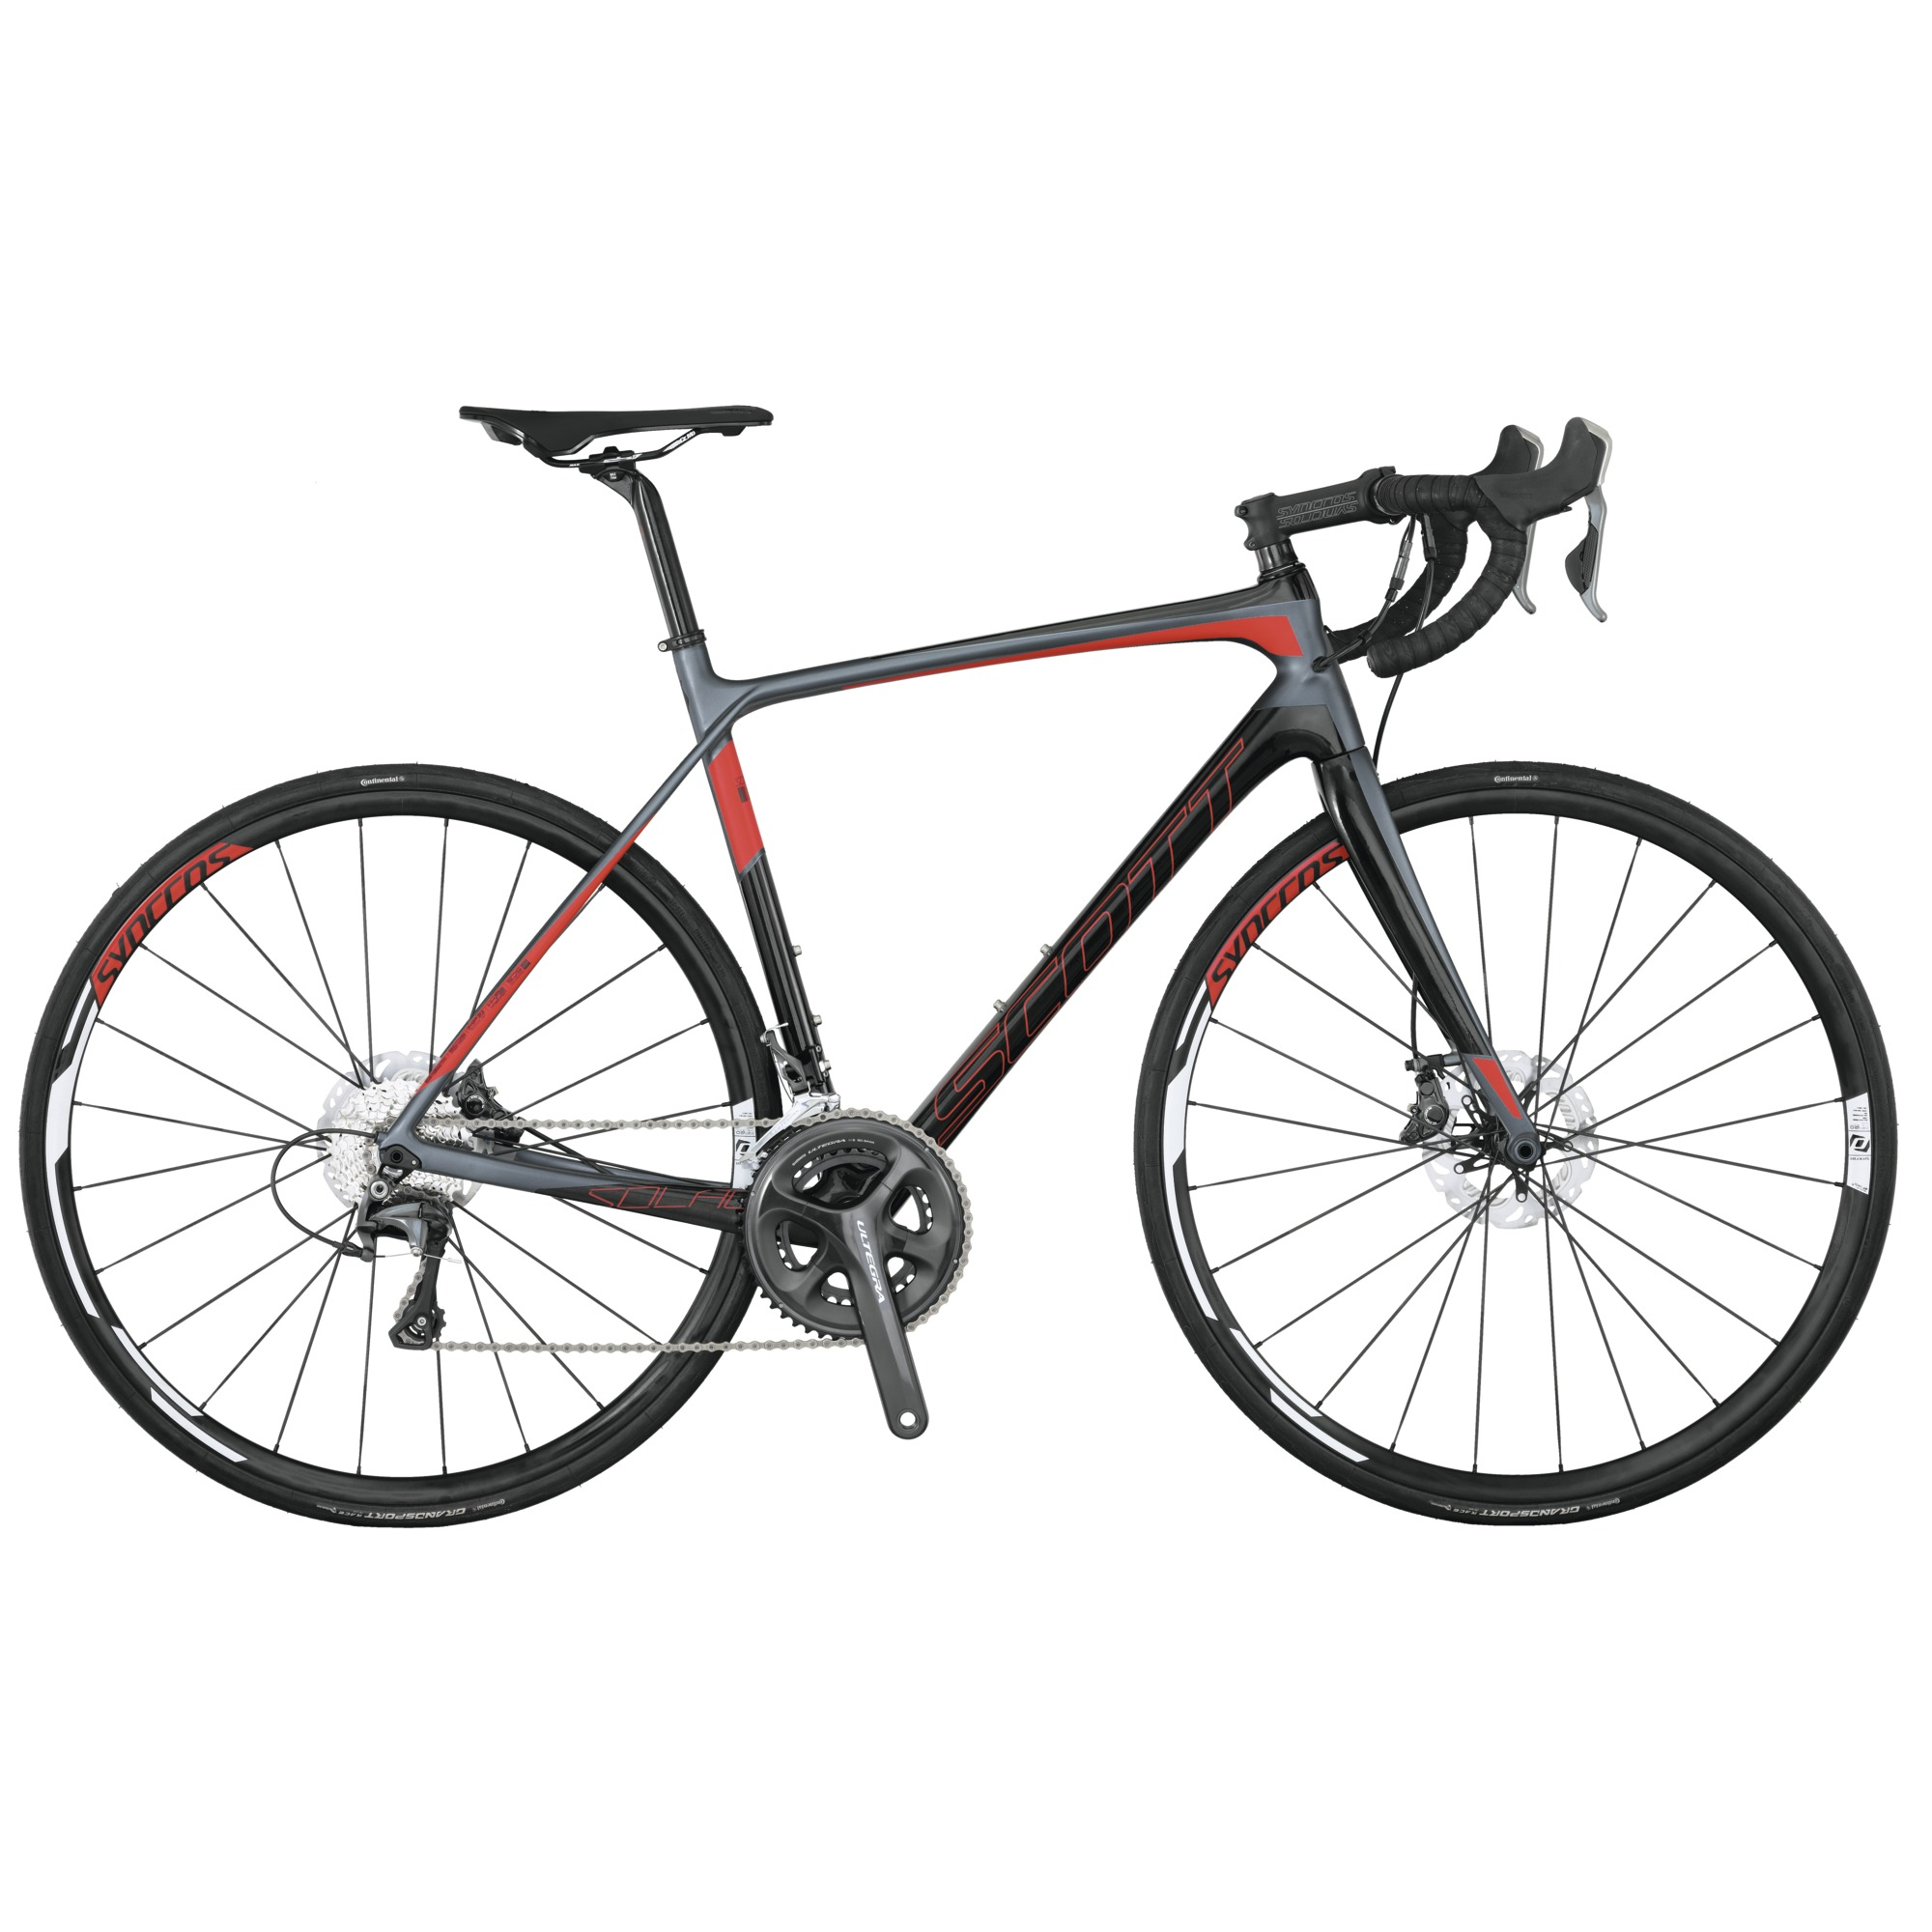 Comfort Bikes With Disc Brakes Bike Solace disc CD